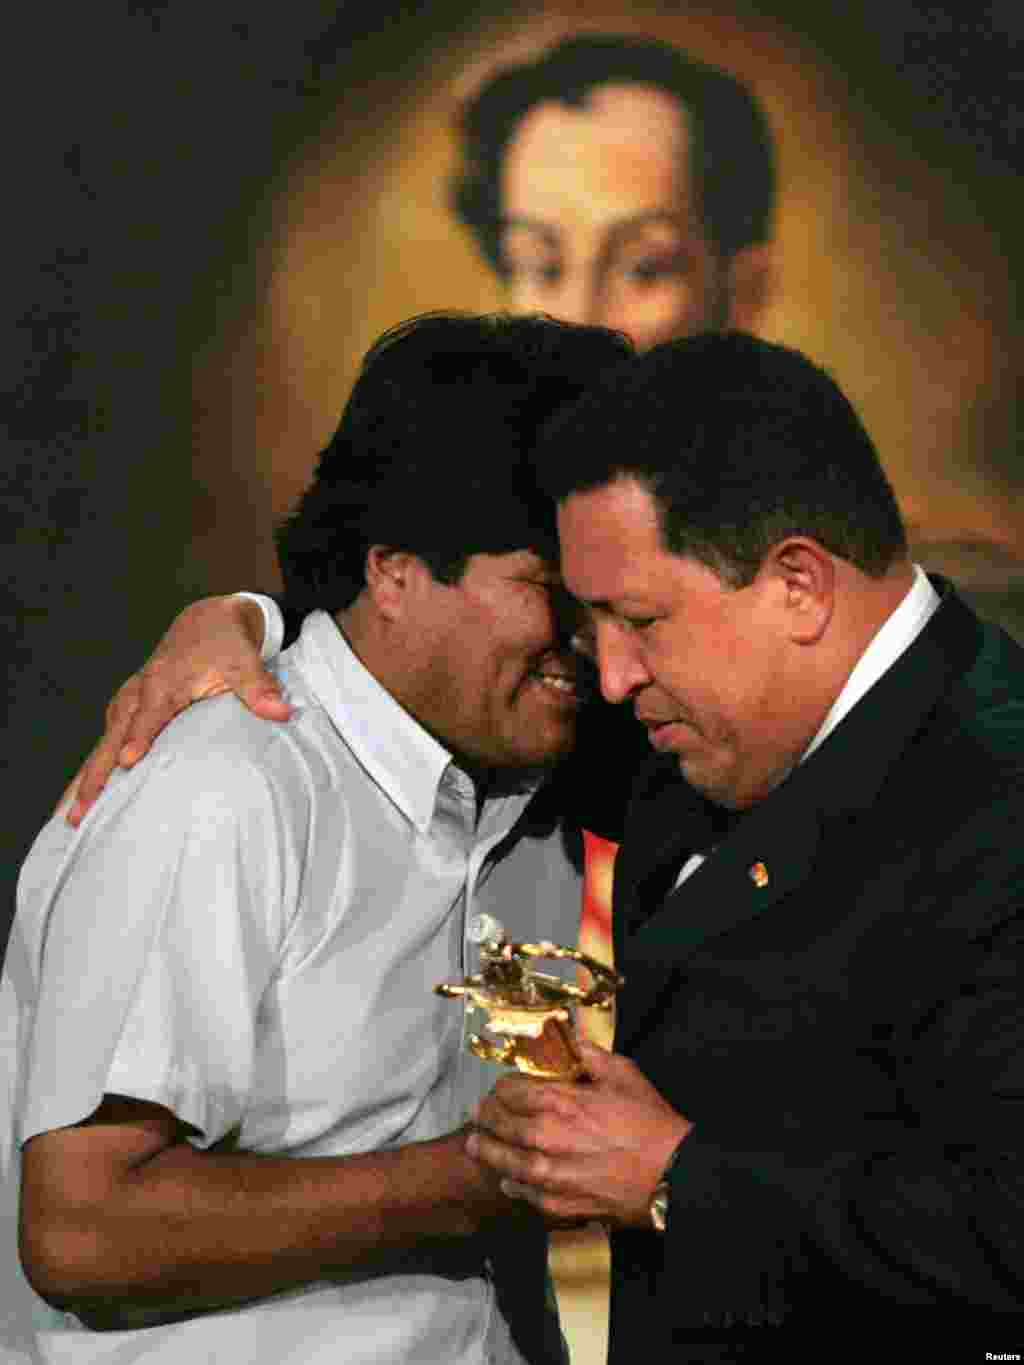 Bolivian President-elect Evo Morales (L) receives a replica of South American independent fighter Simon Bolivar's sword from Venezuelan President Hugo Chavez at the Miraflores Palace in Caracas January 3, 2006. Morales is in Venezuela for a one-day visit. REUTERS/Jorge Silva